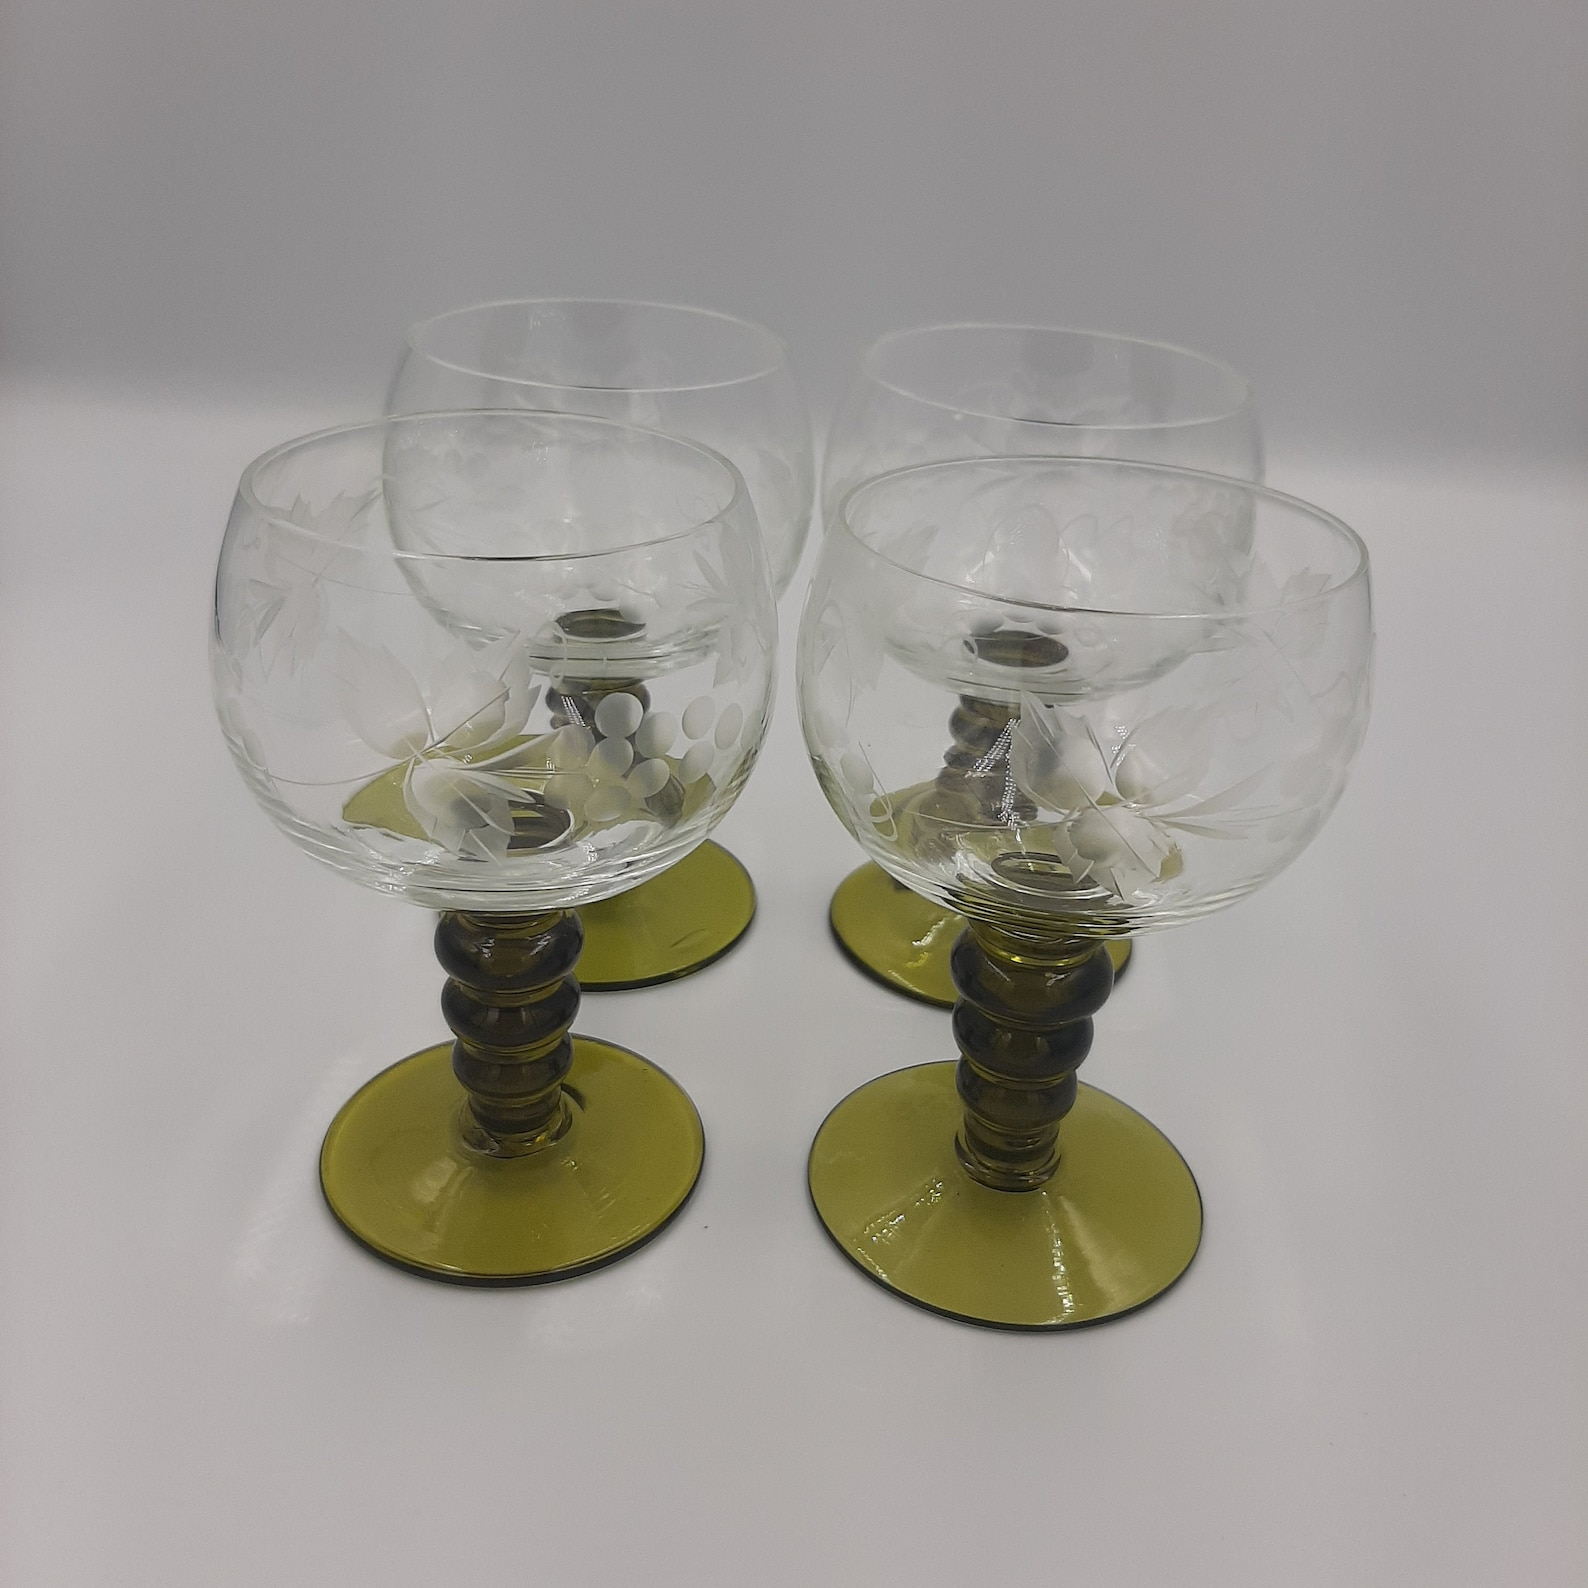 Vintage Roemer Wine Glasses with Olive Green Stem Clear Bowl with Etched Grape and Vines